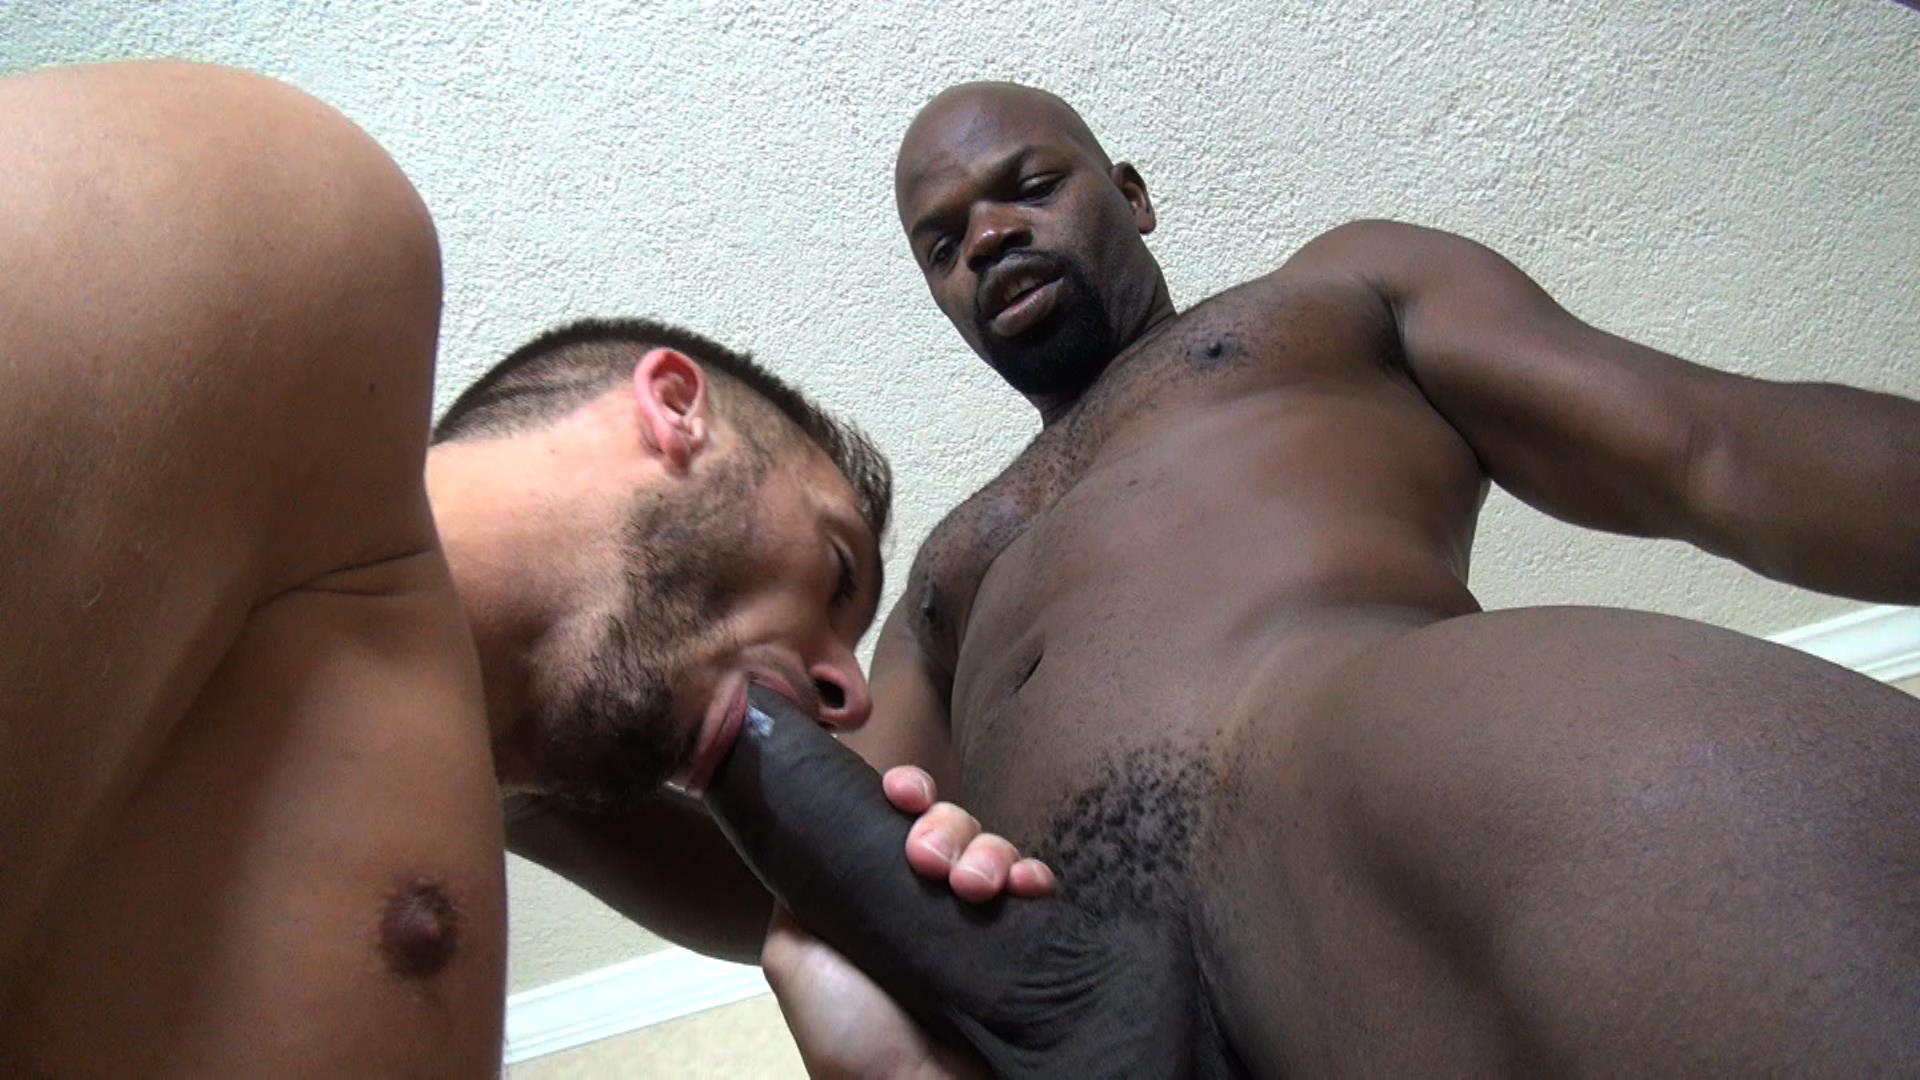 Raw-Fuck-Club-Adam-Russo-and-Cutler-X-and-Dylan-Strokes-Interracial-Bareback-Big-Black-Cock-Amateur-Gay-Porn-1 Interracial Boyfriends Adam Russo and Cutler X Barebacking Dylan Strokes